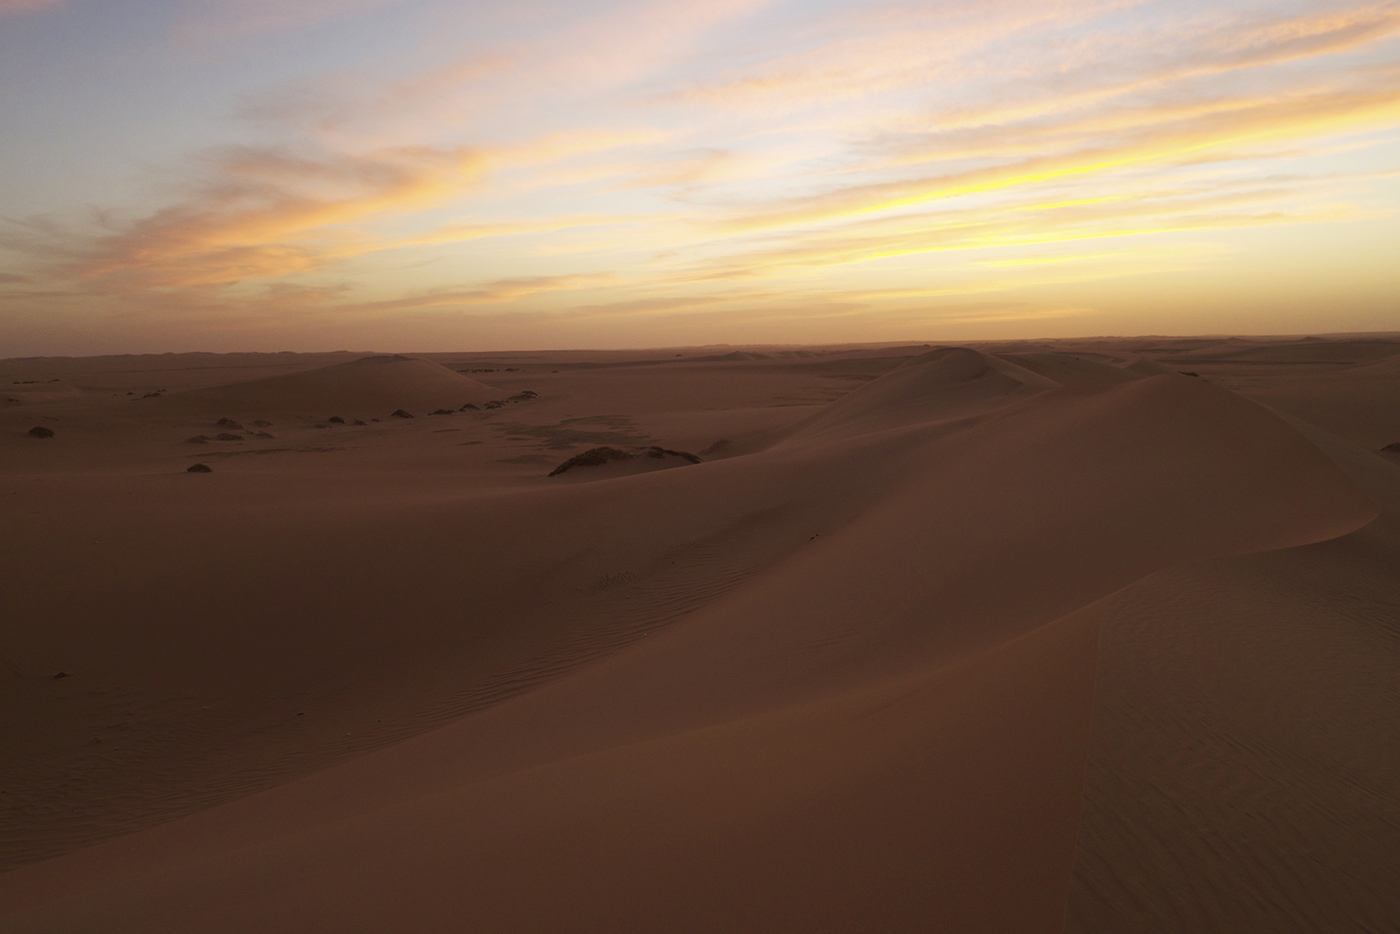 Dunes of the central southern Libyan desert, Tebu country.